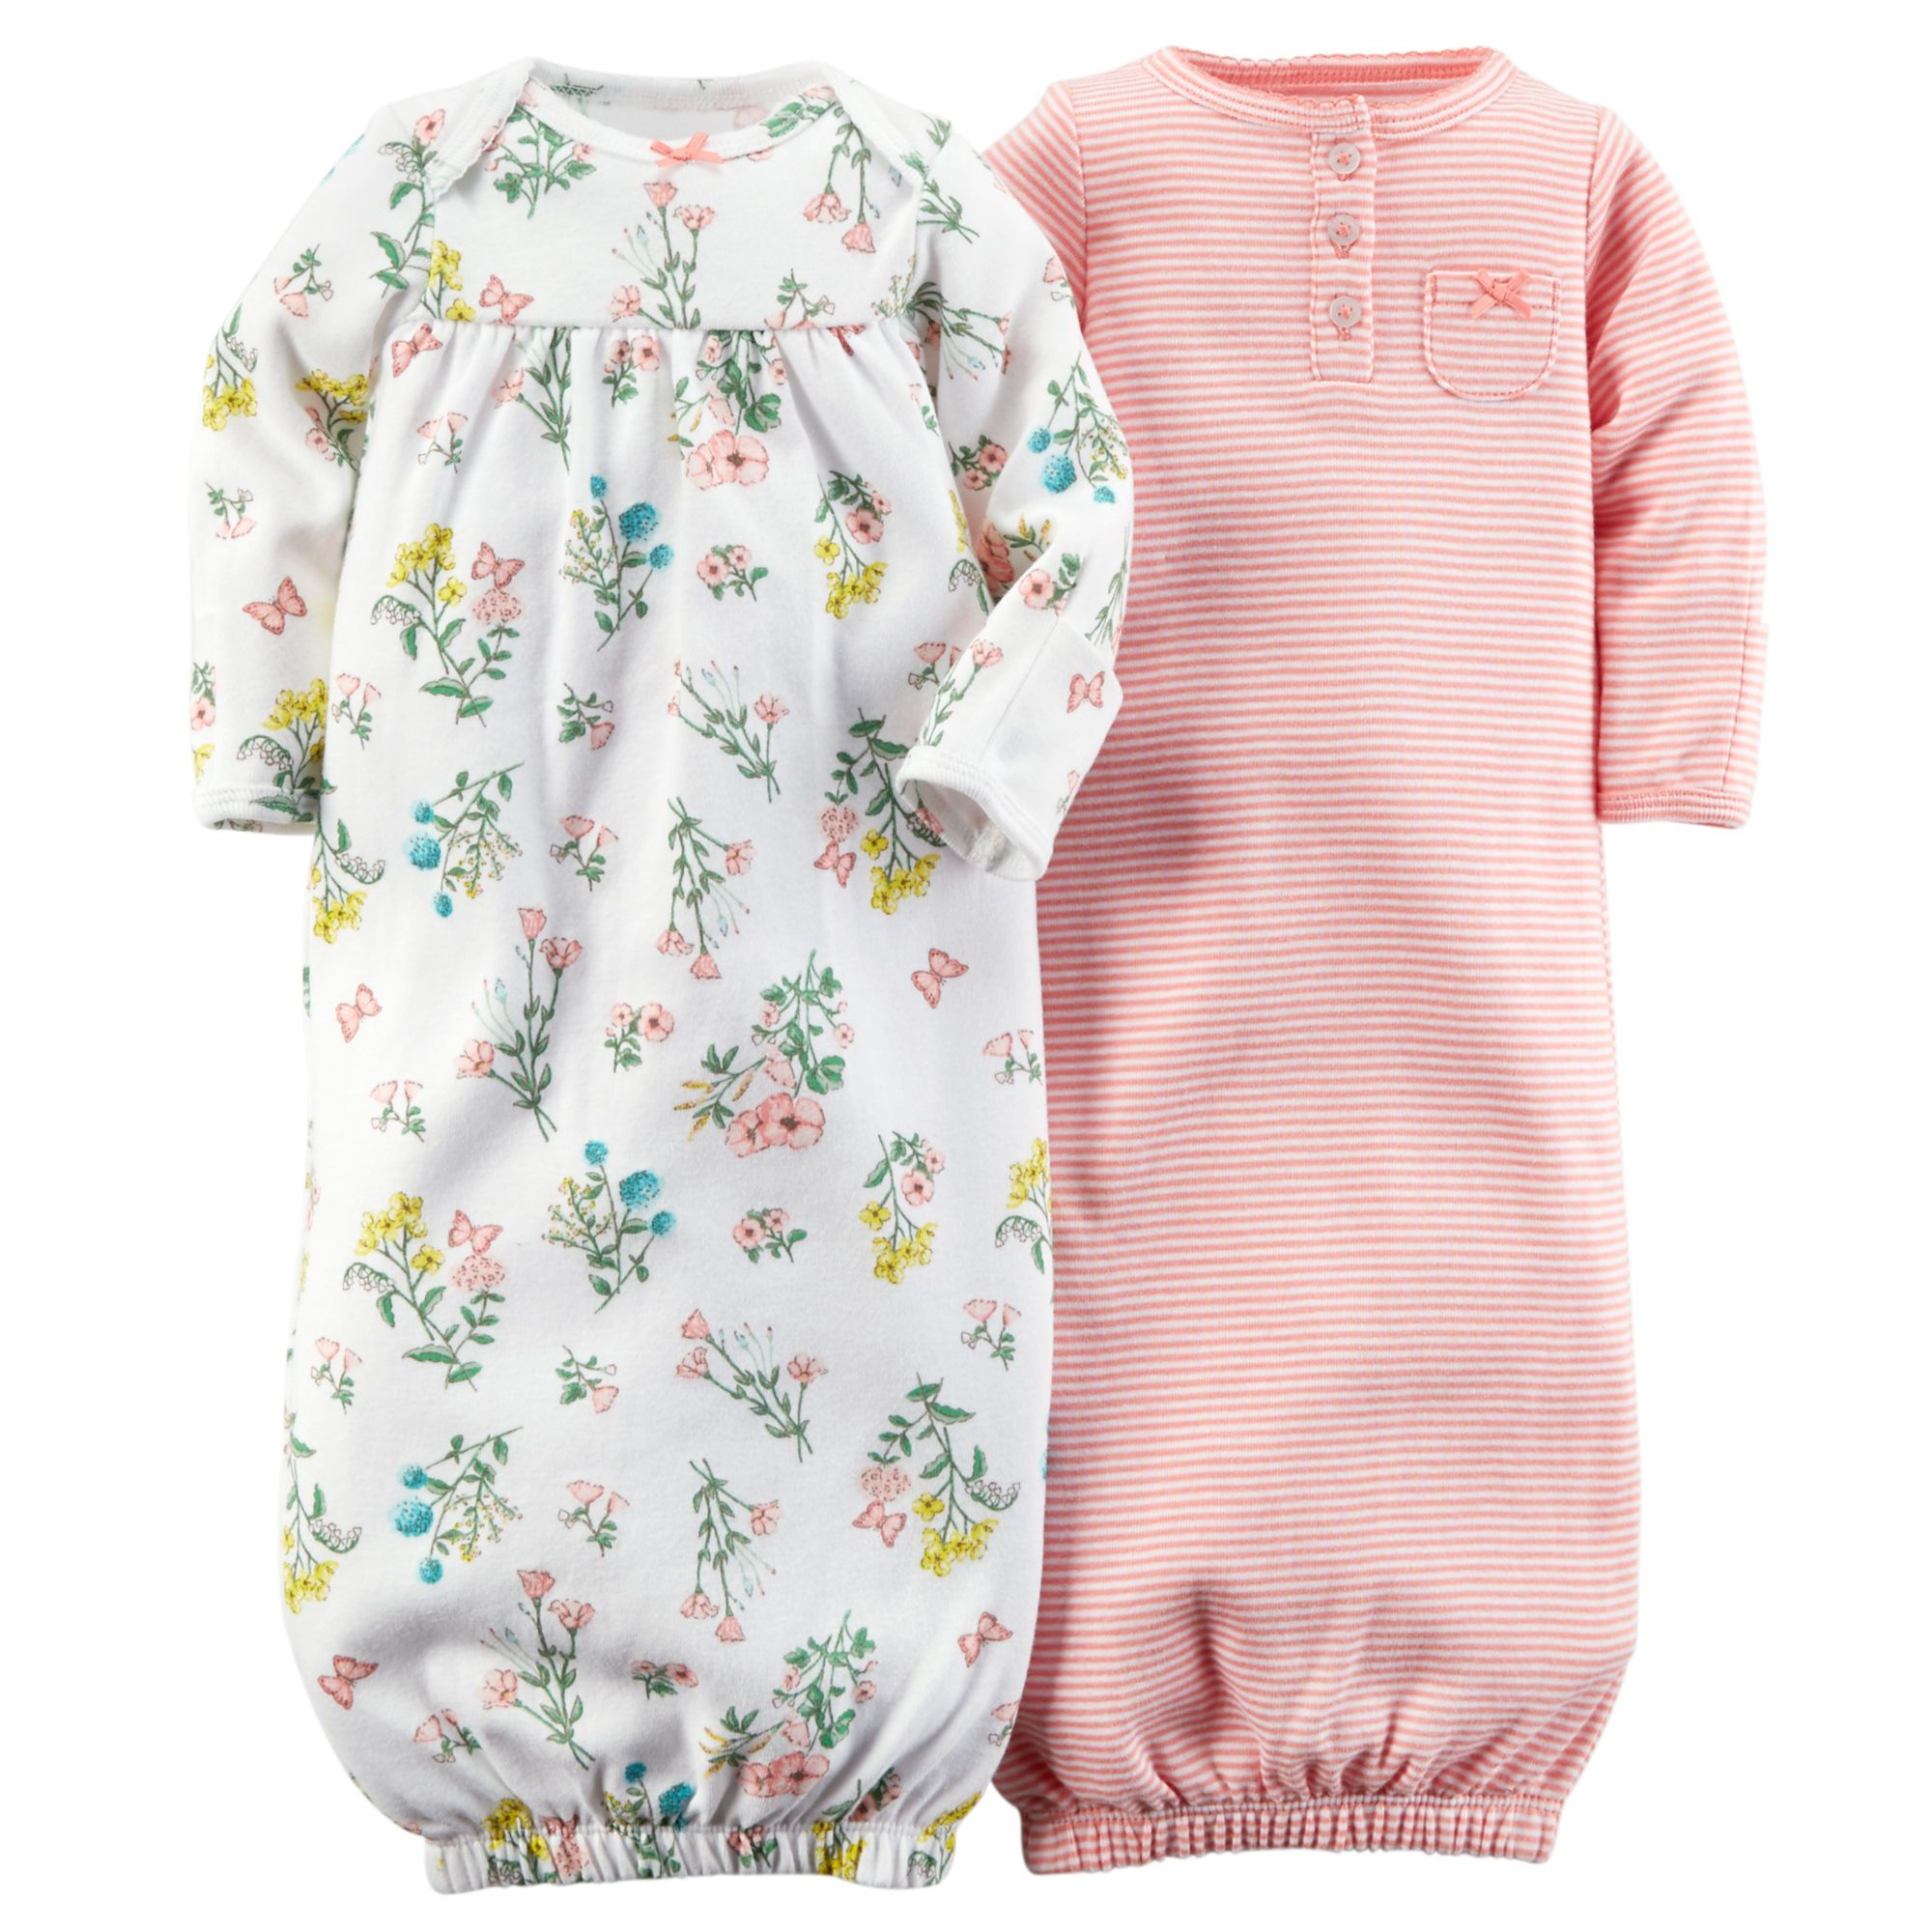 2-Pack Sleeper Gowns | oooh baby baby | Pinterest | Babies, Baby ...